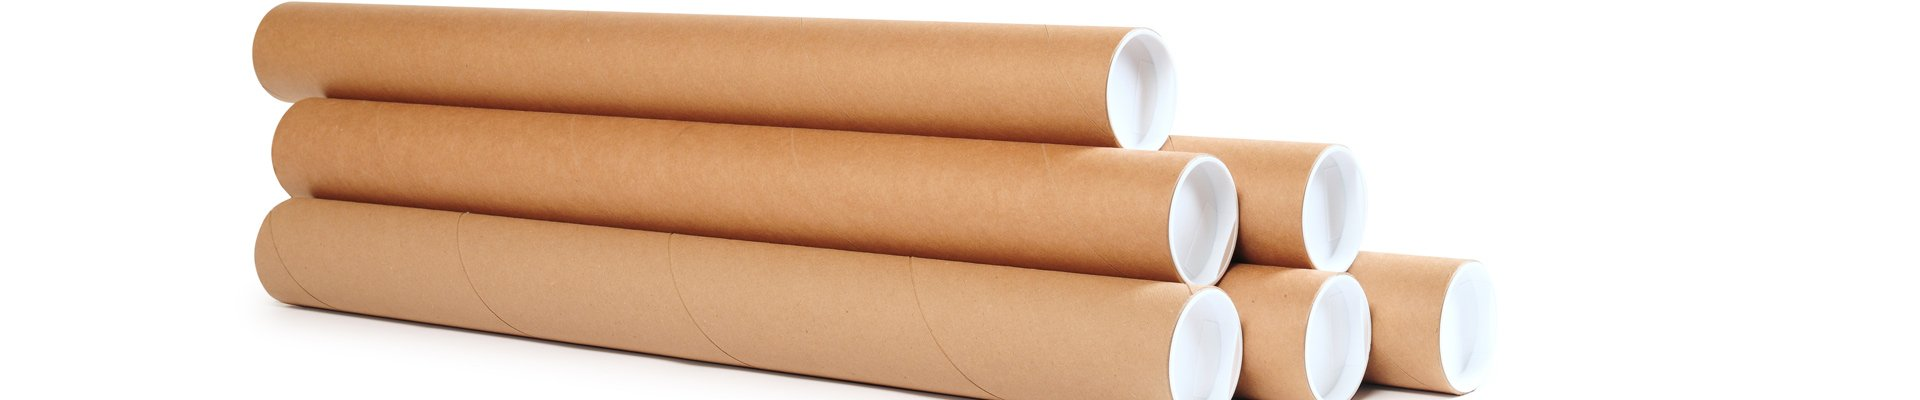 the tubeworks cardboard tube